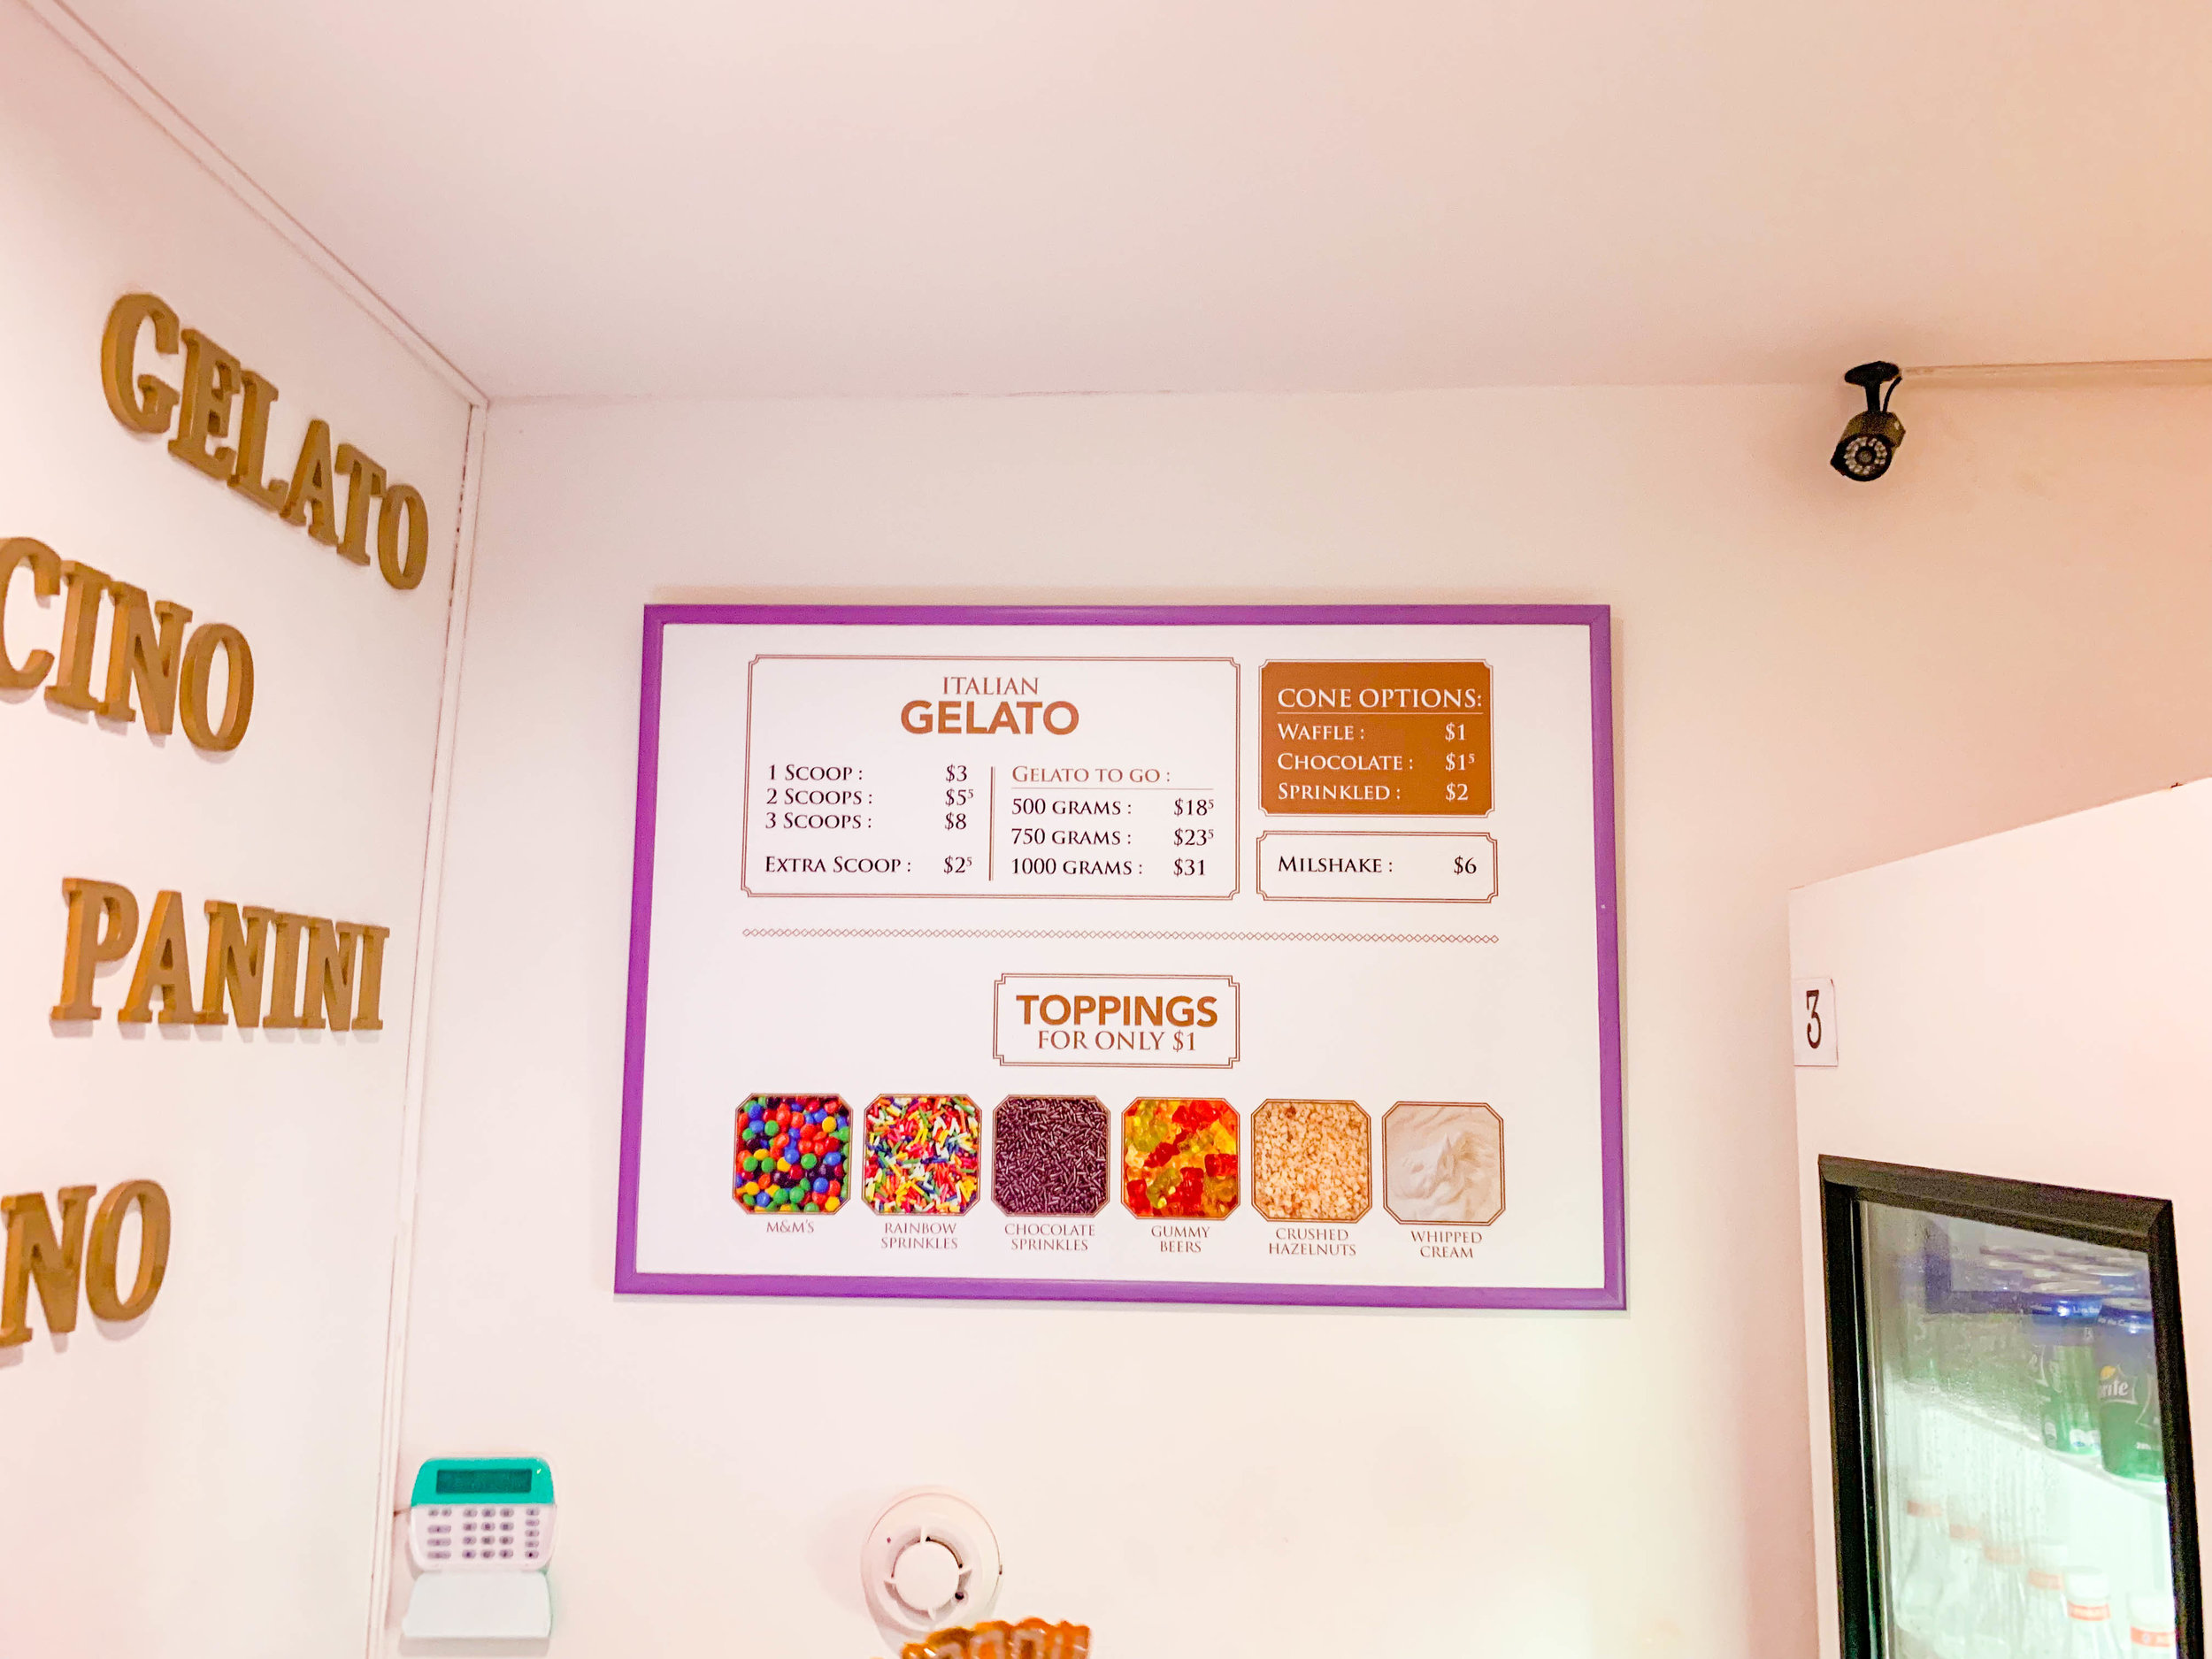 Gelatissimo Aruba Ice Cream - Gelato prices